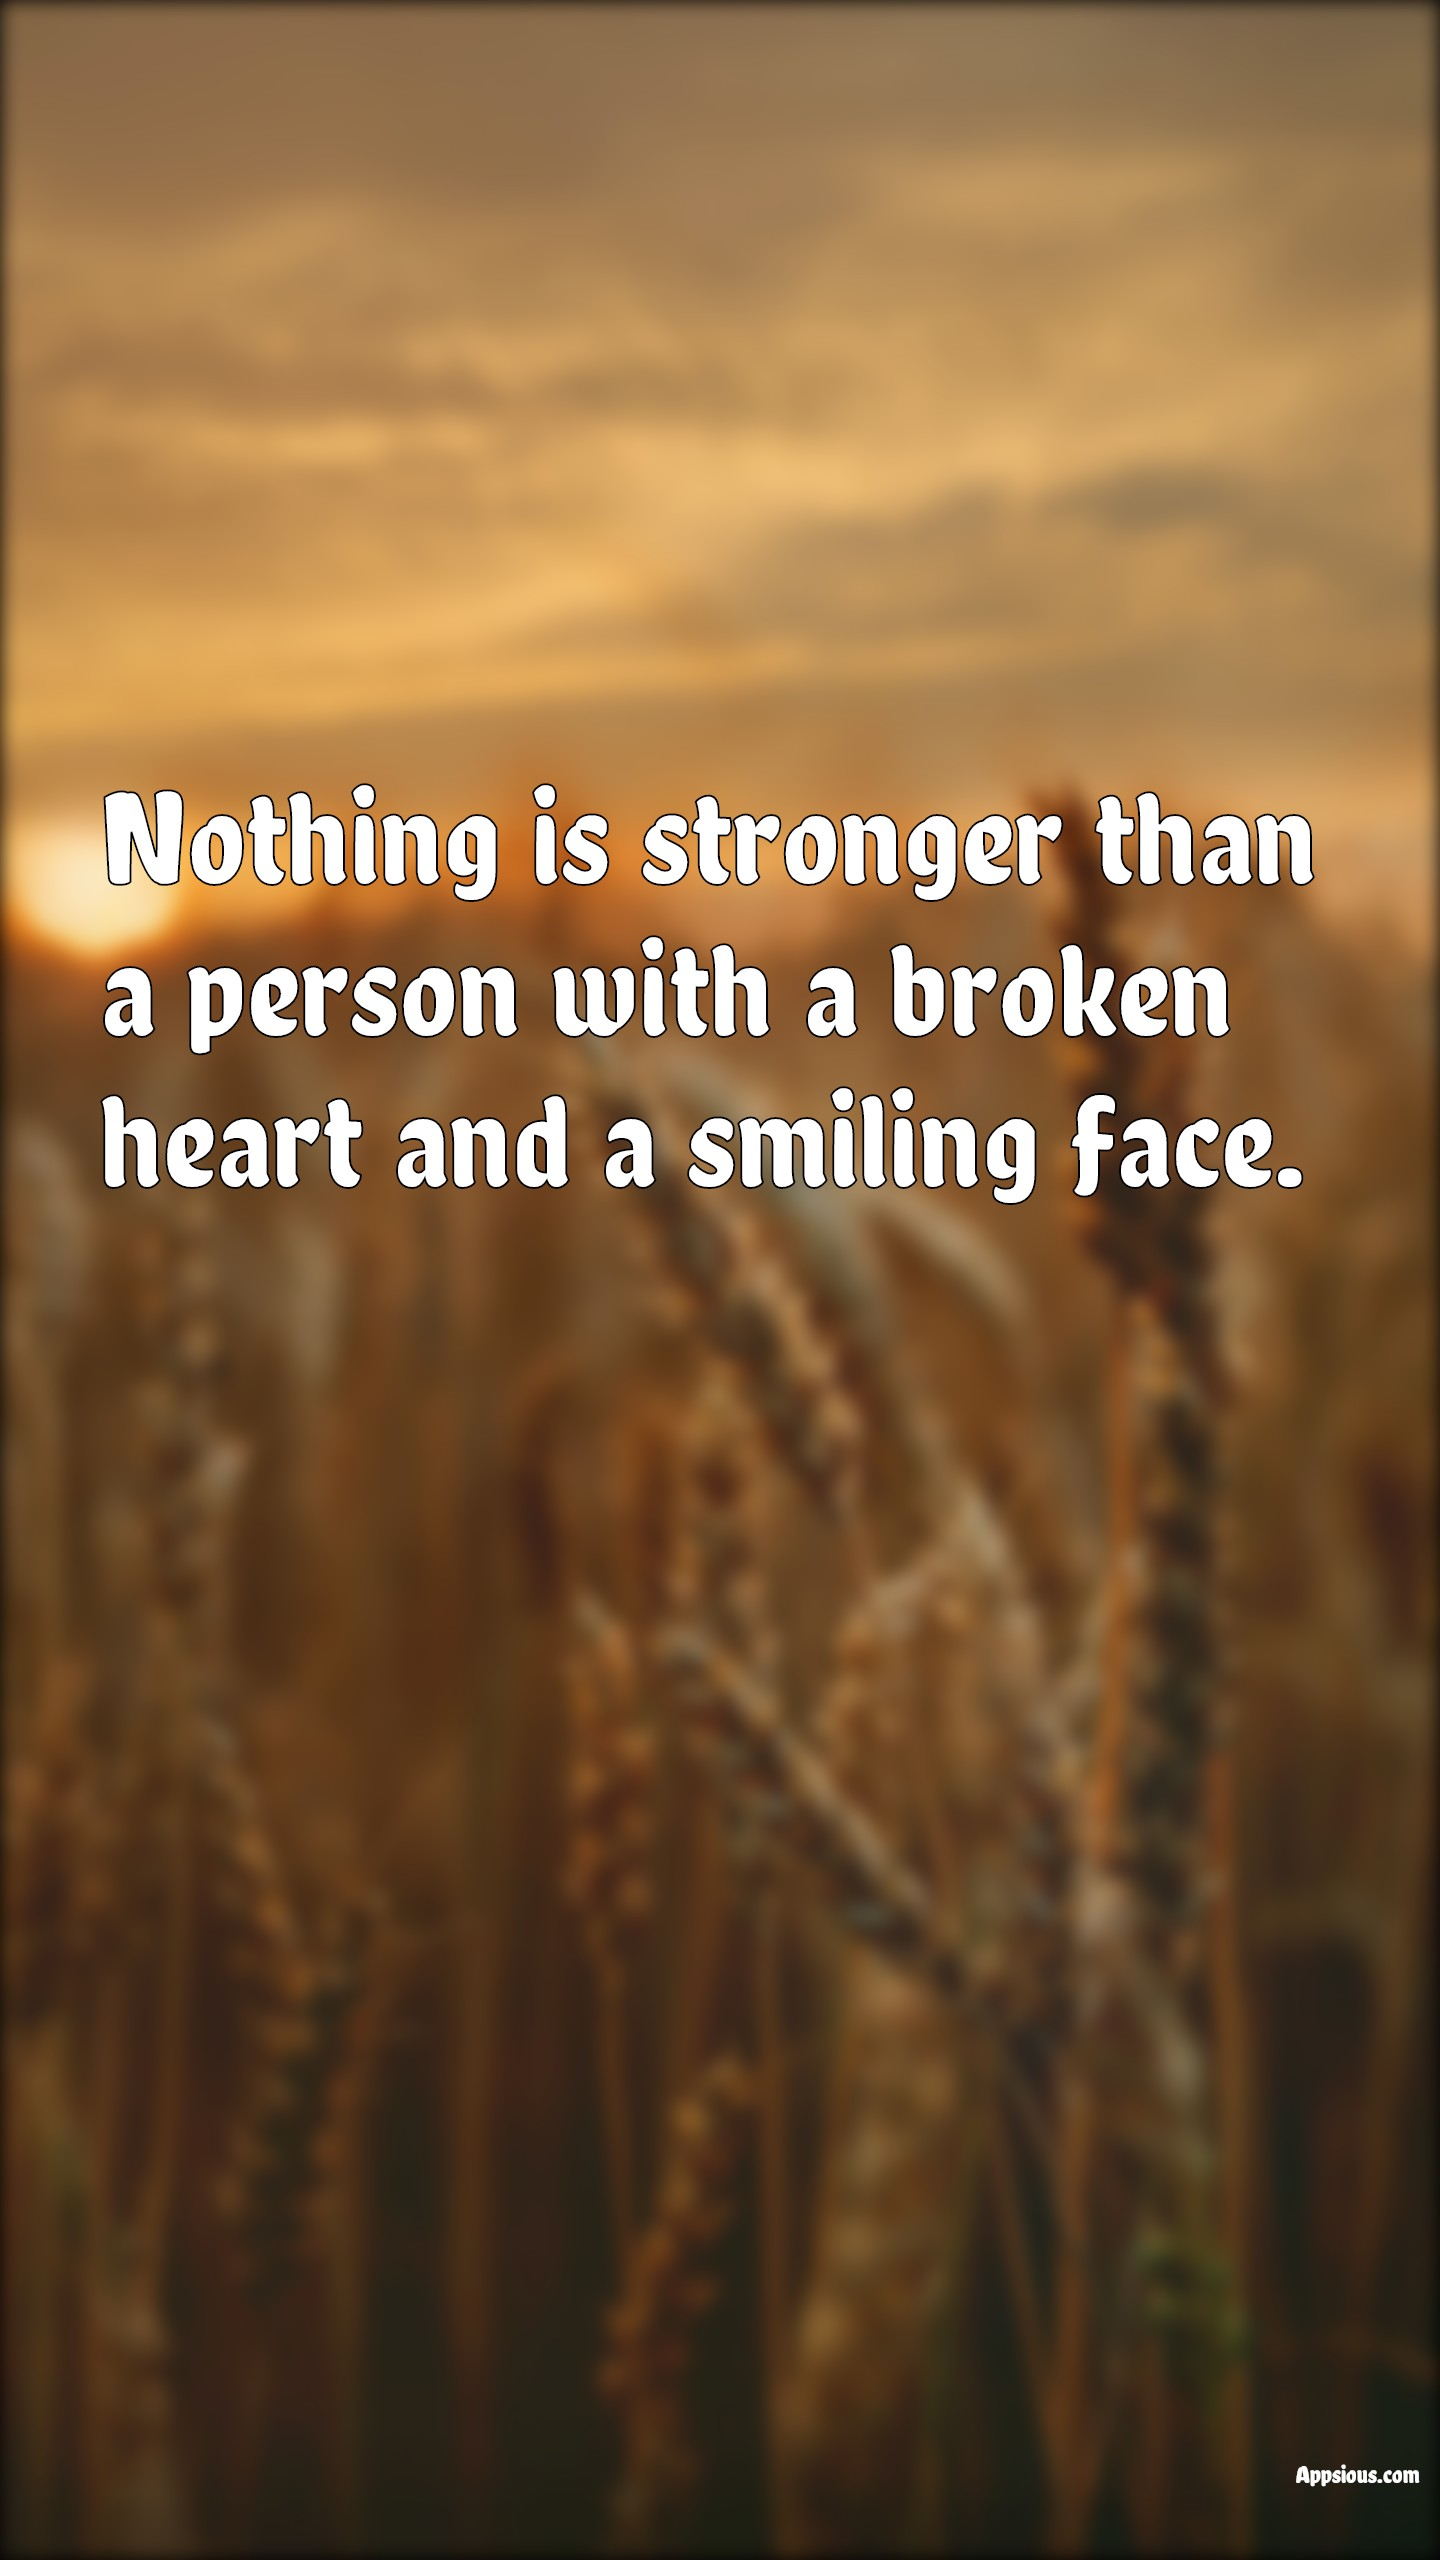 Nothing is stronger than a person with a broken heart and a smiling face.